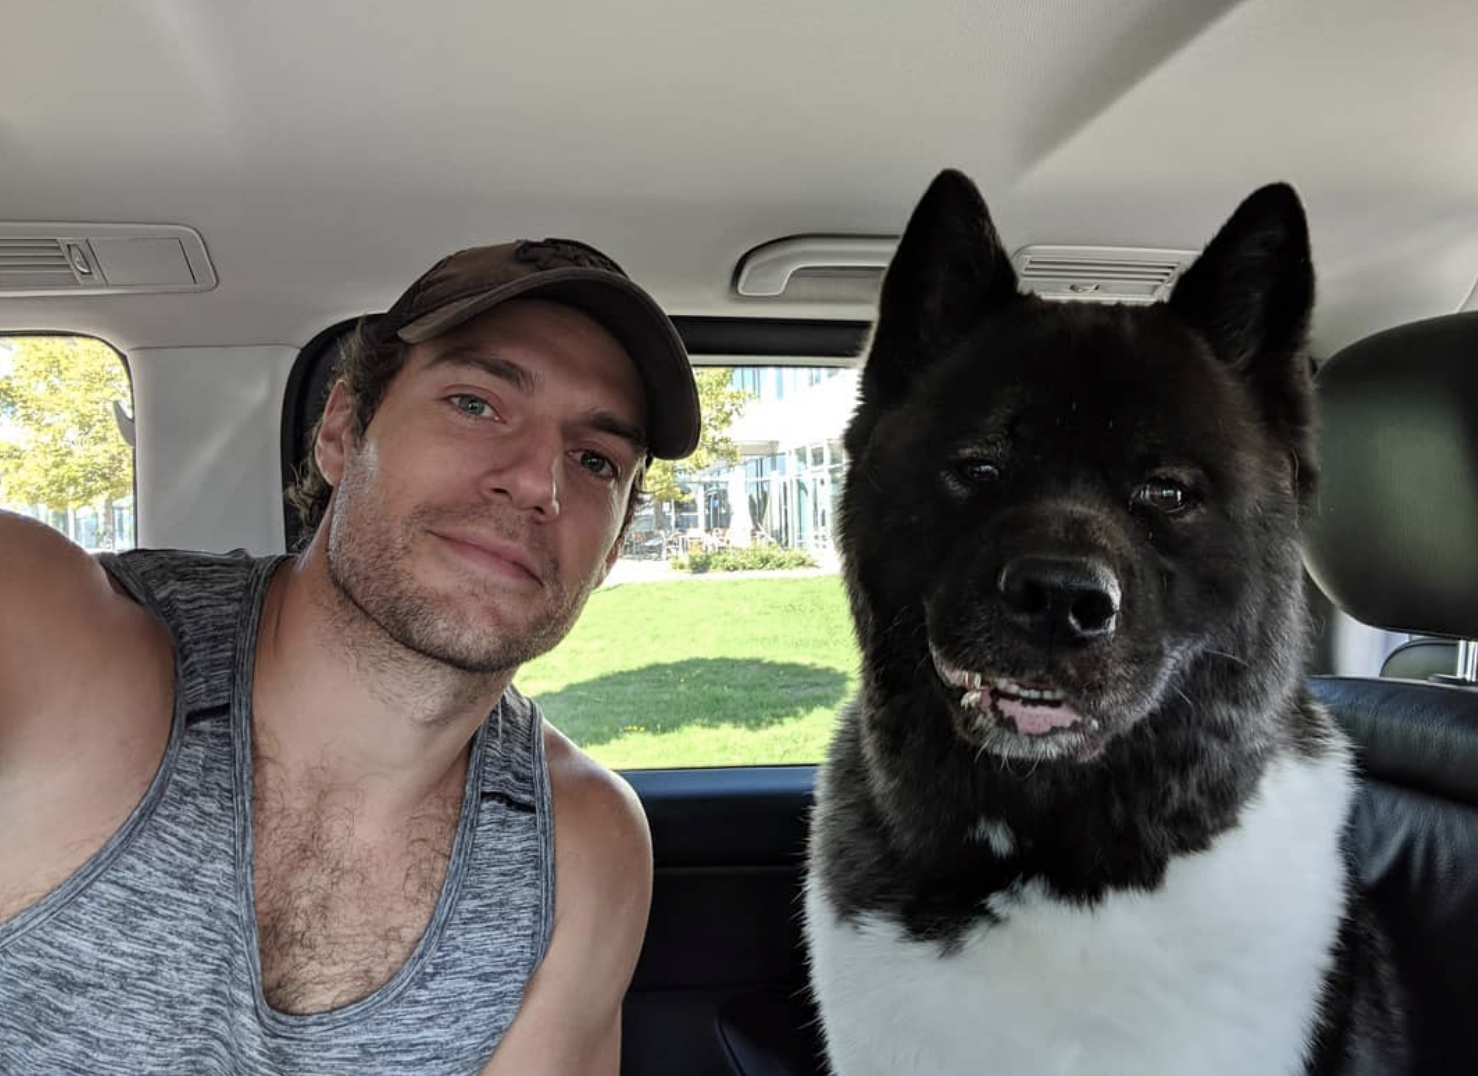 """""""Another day in Paradise, another day's training complete on The Witcher! The Bear has some crazy focus going on here. He's learning well.... #Witcher #Kal #BearSchool #Netflix""""   Henry Cavill, who posted this selfie with his dog, Kal, on Oct. 4, 2018"""